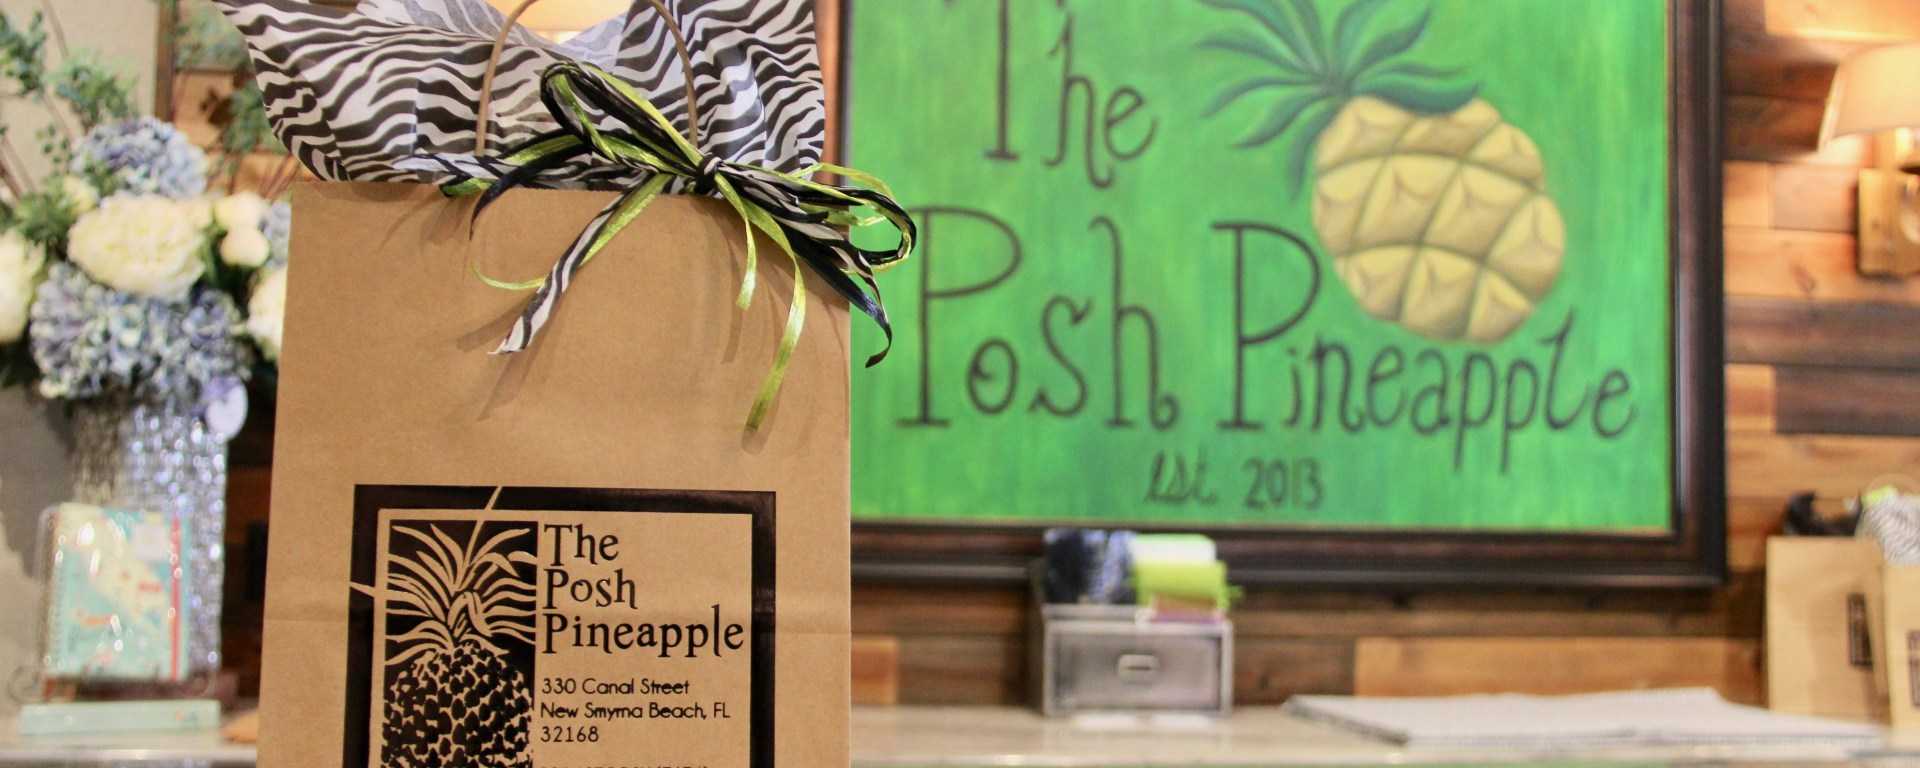 Posh Pineapple cash wrap counter and bag